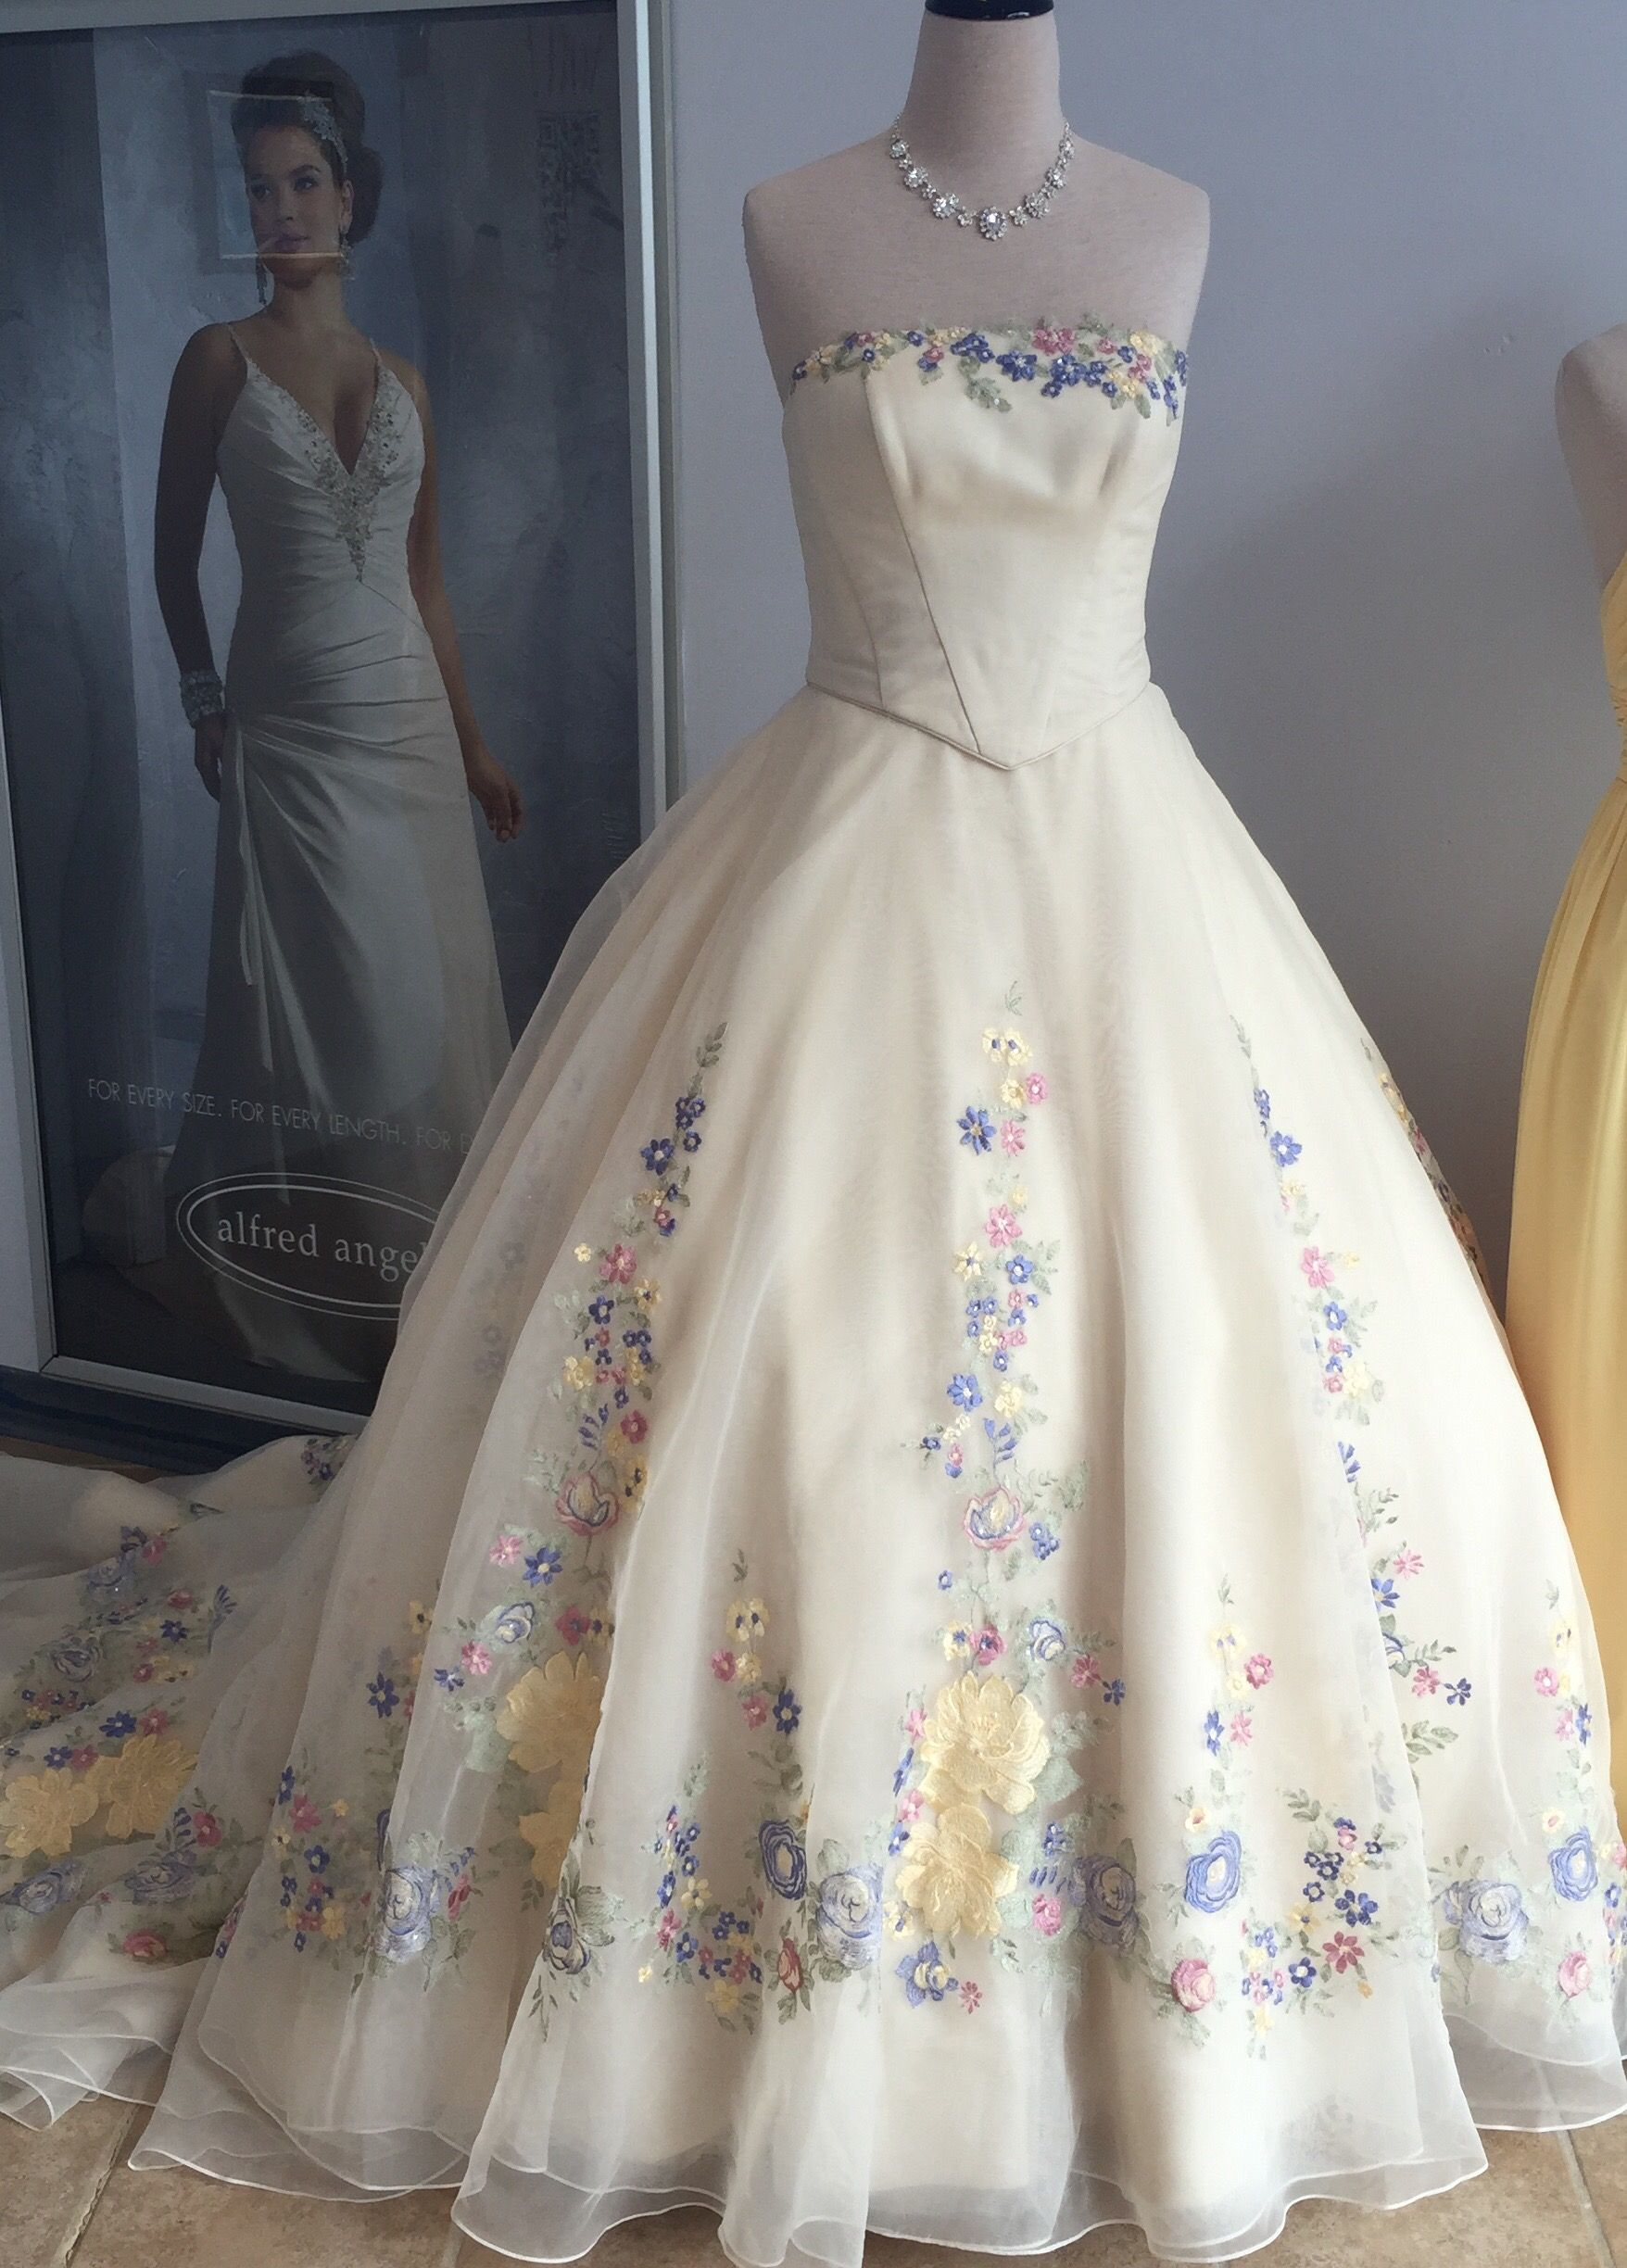 If I could turn the dress form fitting instead of princess